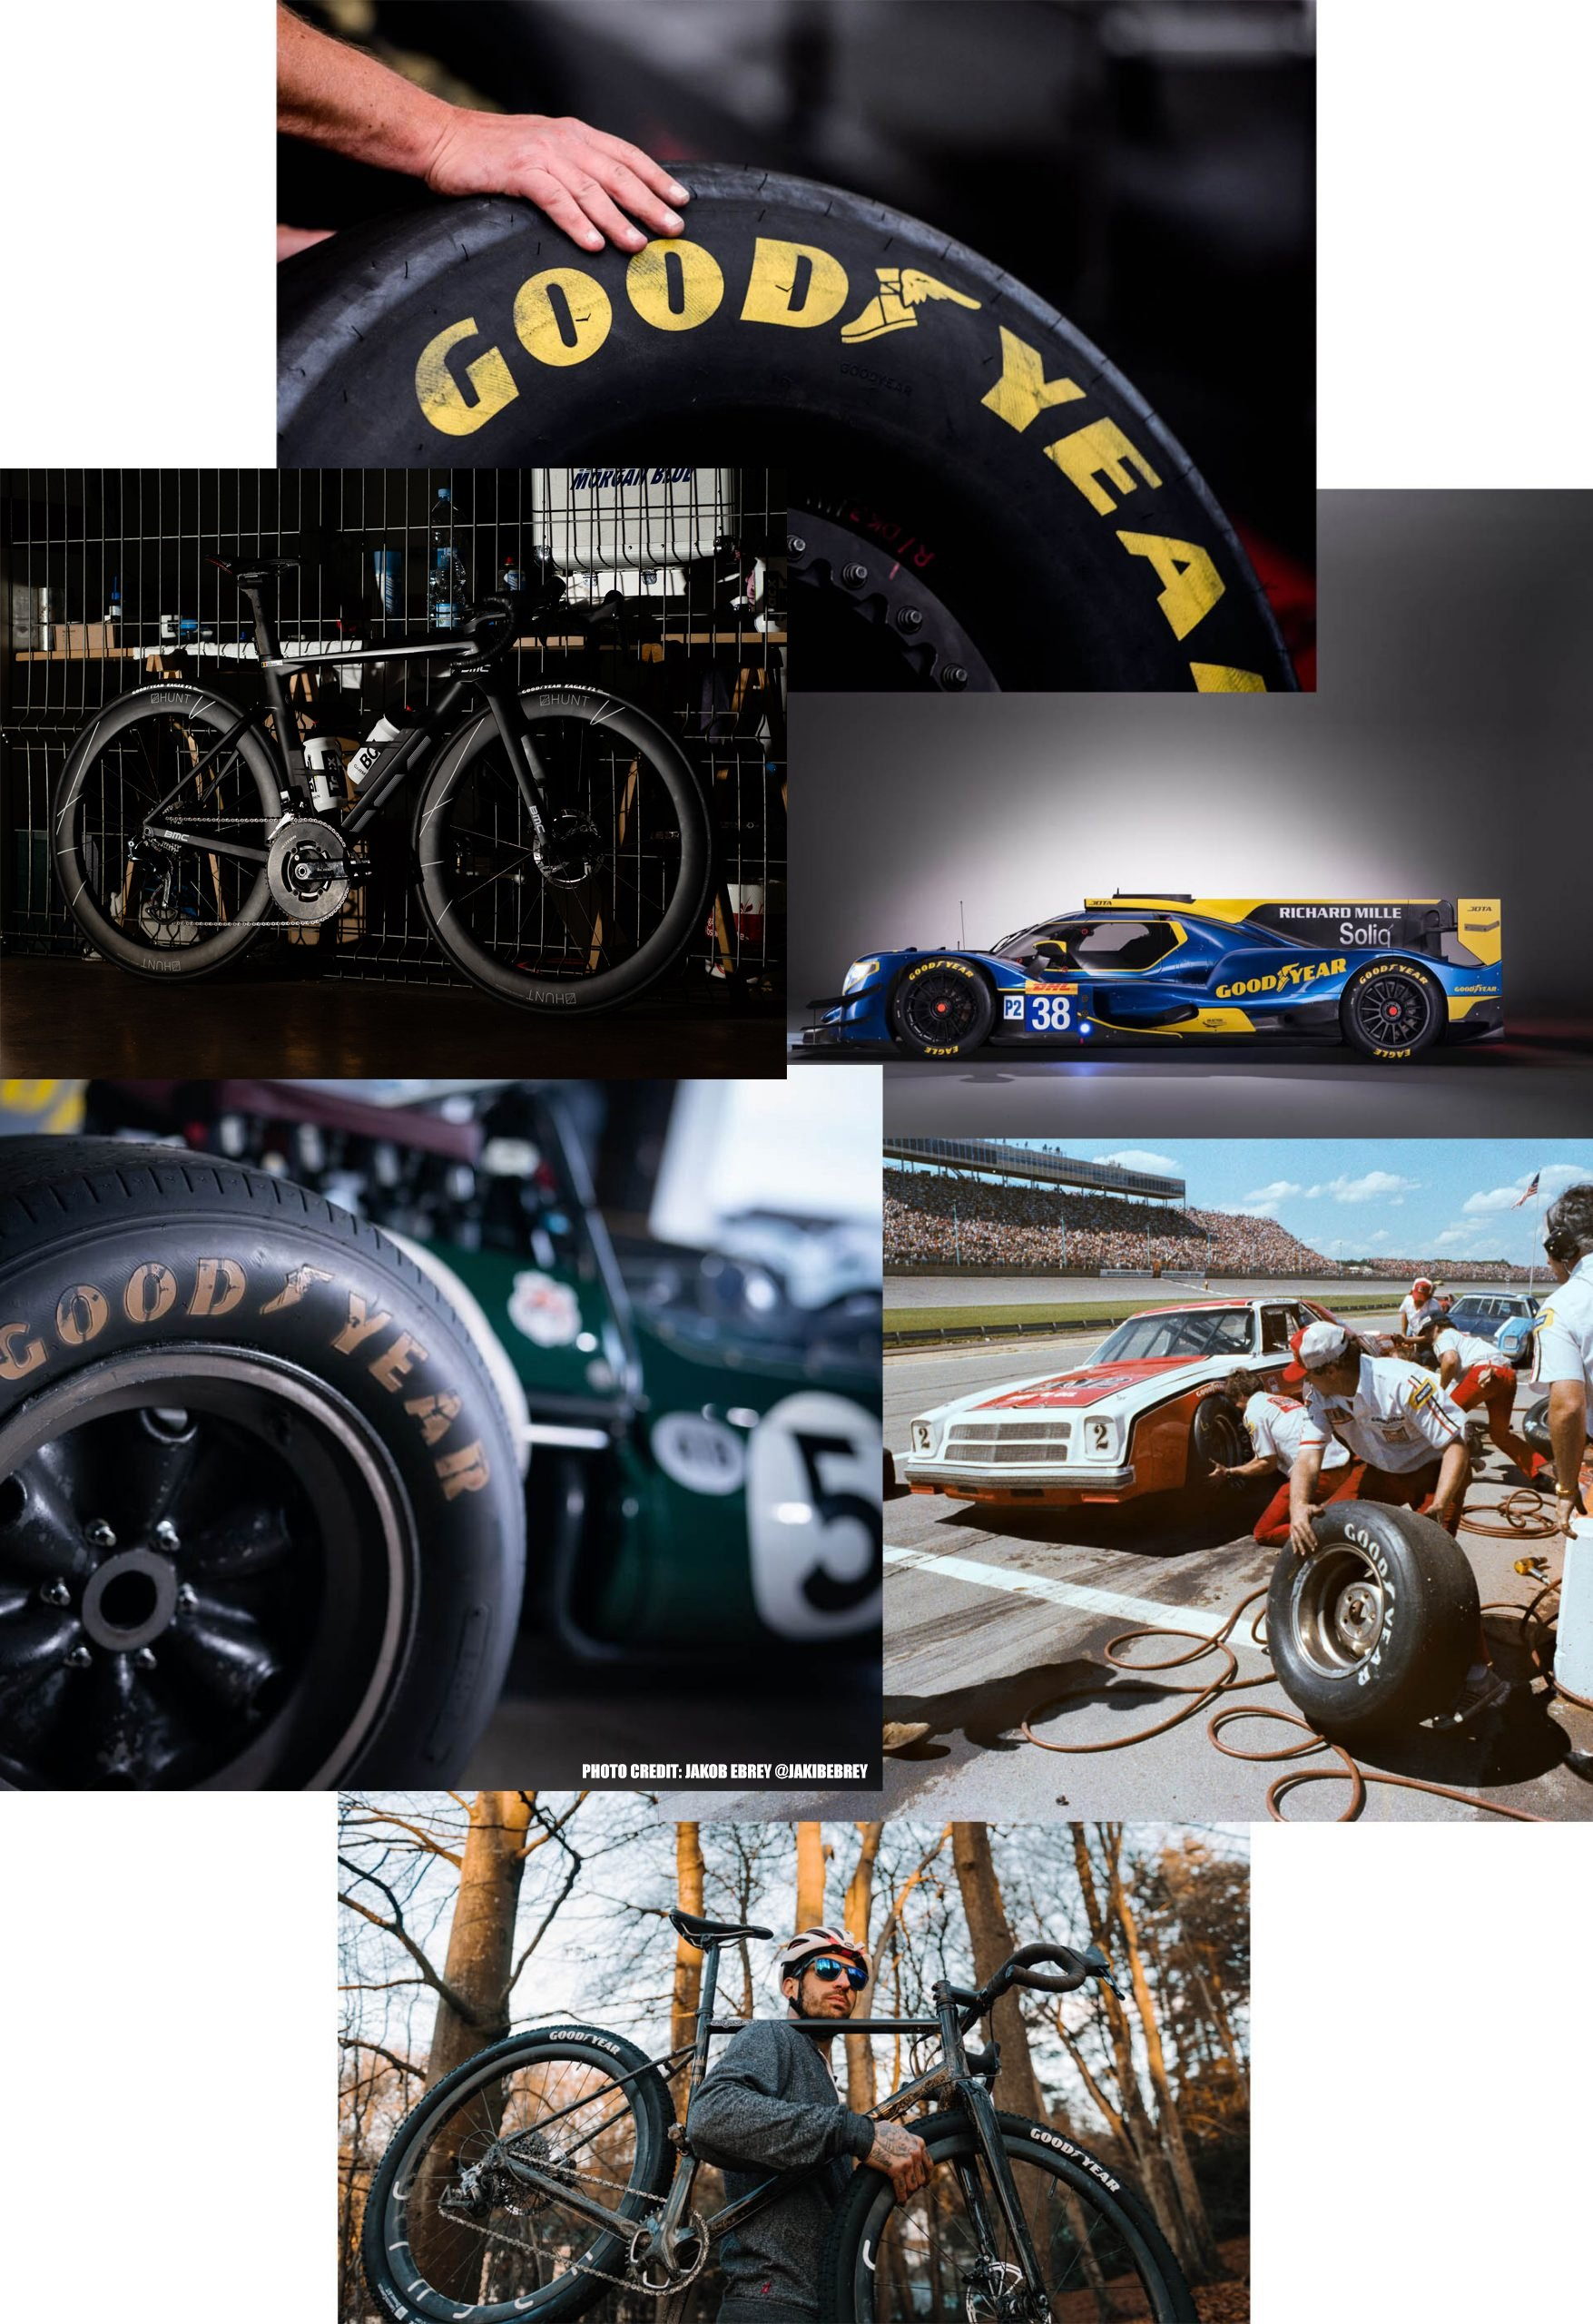 Montage of historic Goodyear tires